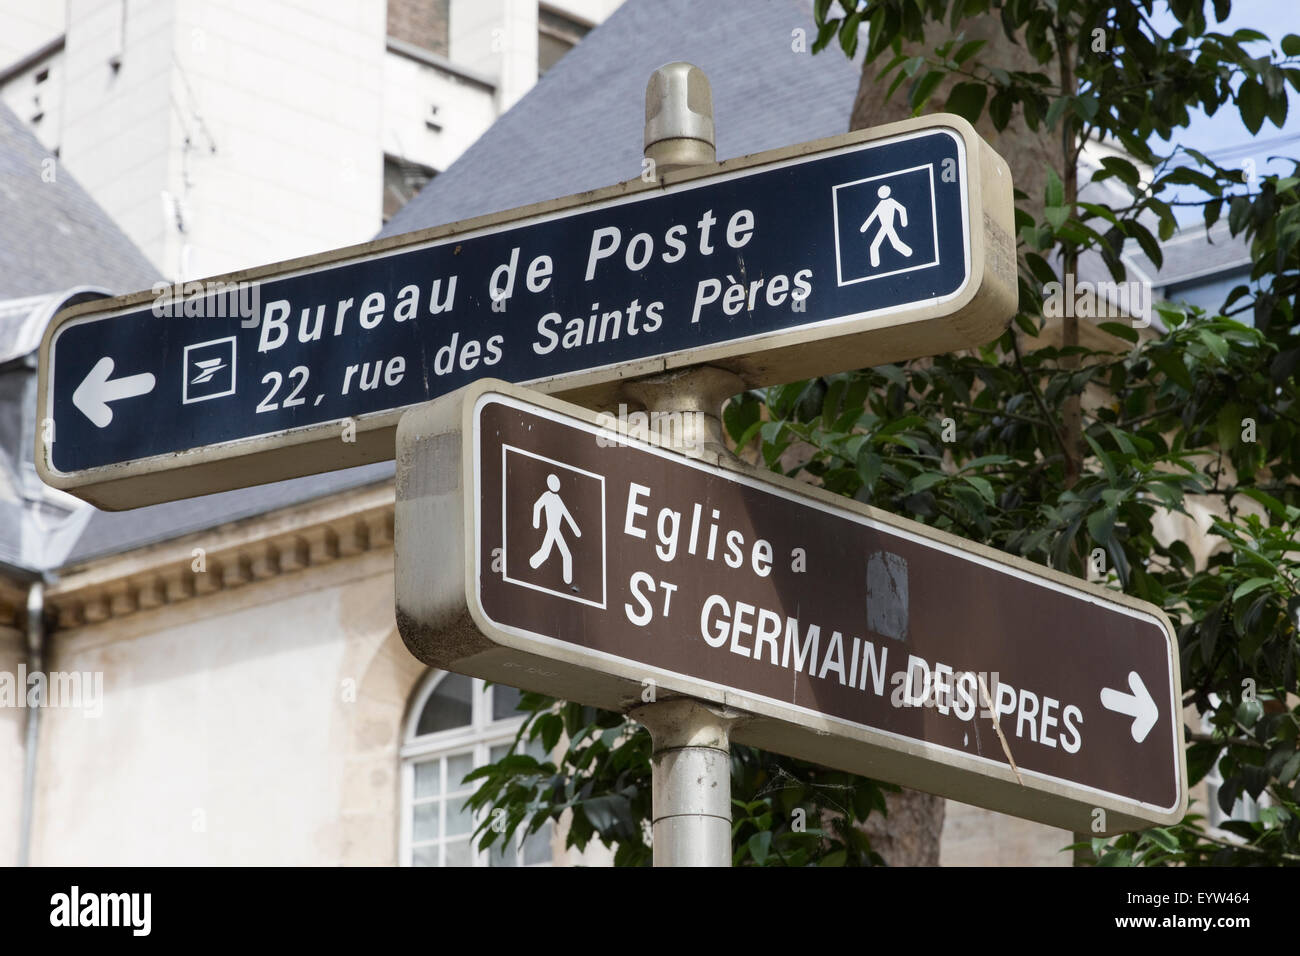 Street signs for the Abbey of Saint-Germain-des-Prés and Bureau de Poste in Paris, France. - Stock Image